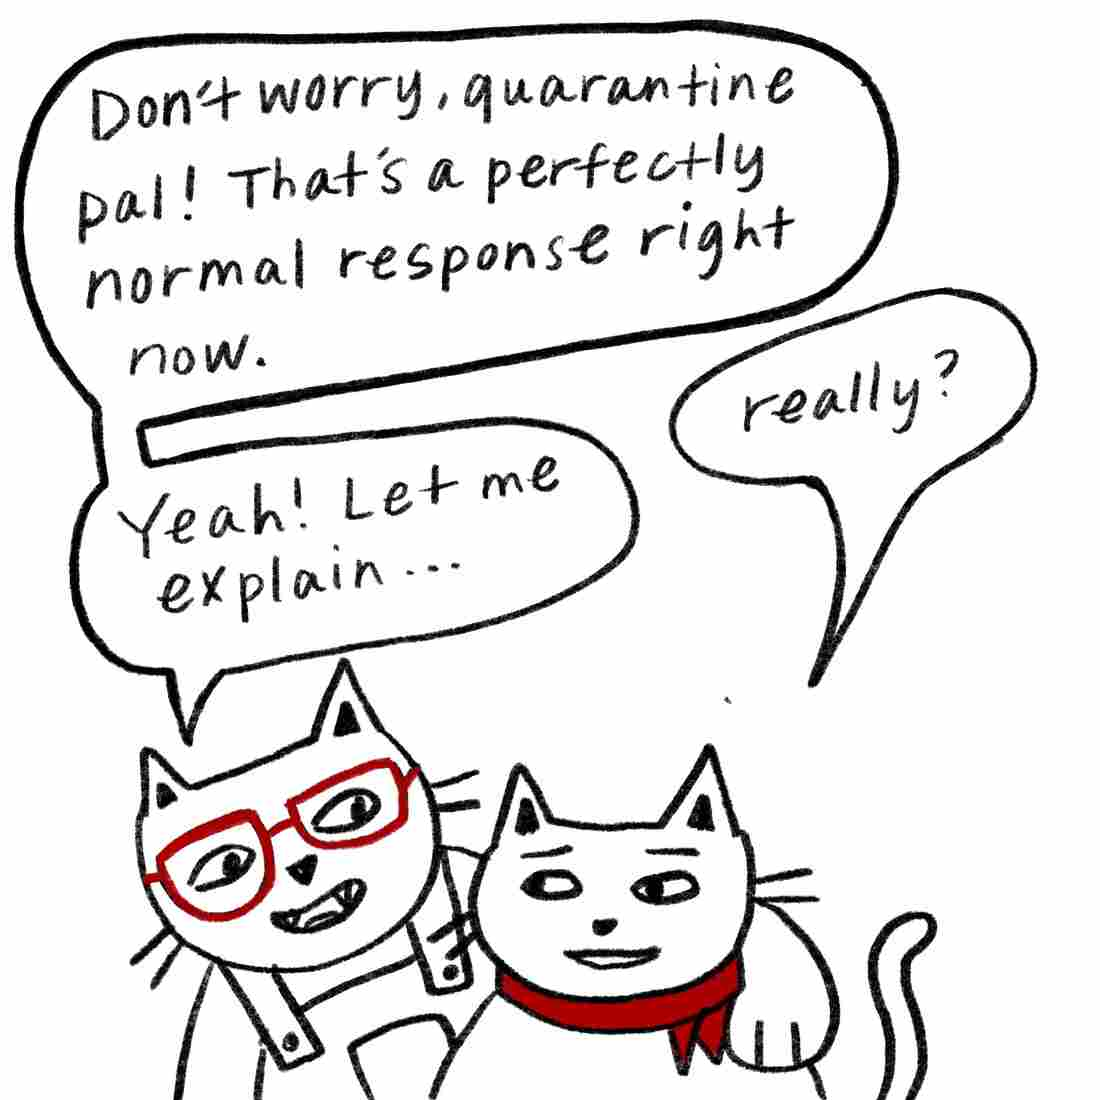 """Don't worry, quarantine pal!"" says Glasses Cat. ""That's a perfectly normal response right now."" ""Really?"" Bandanna Cat says. ""Yeah, let me explain ..."""